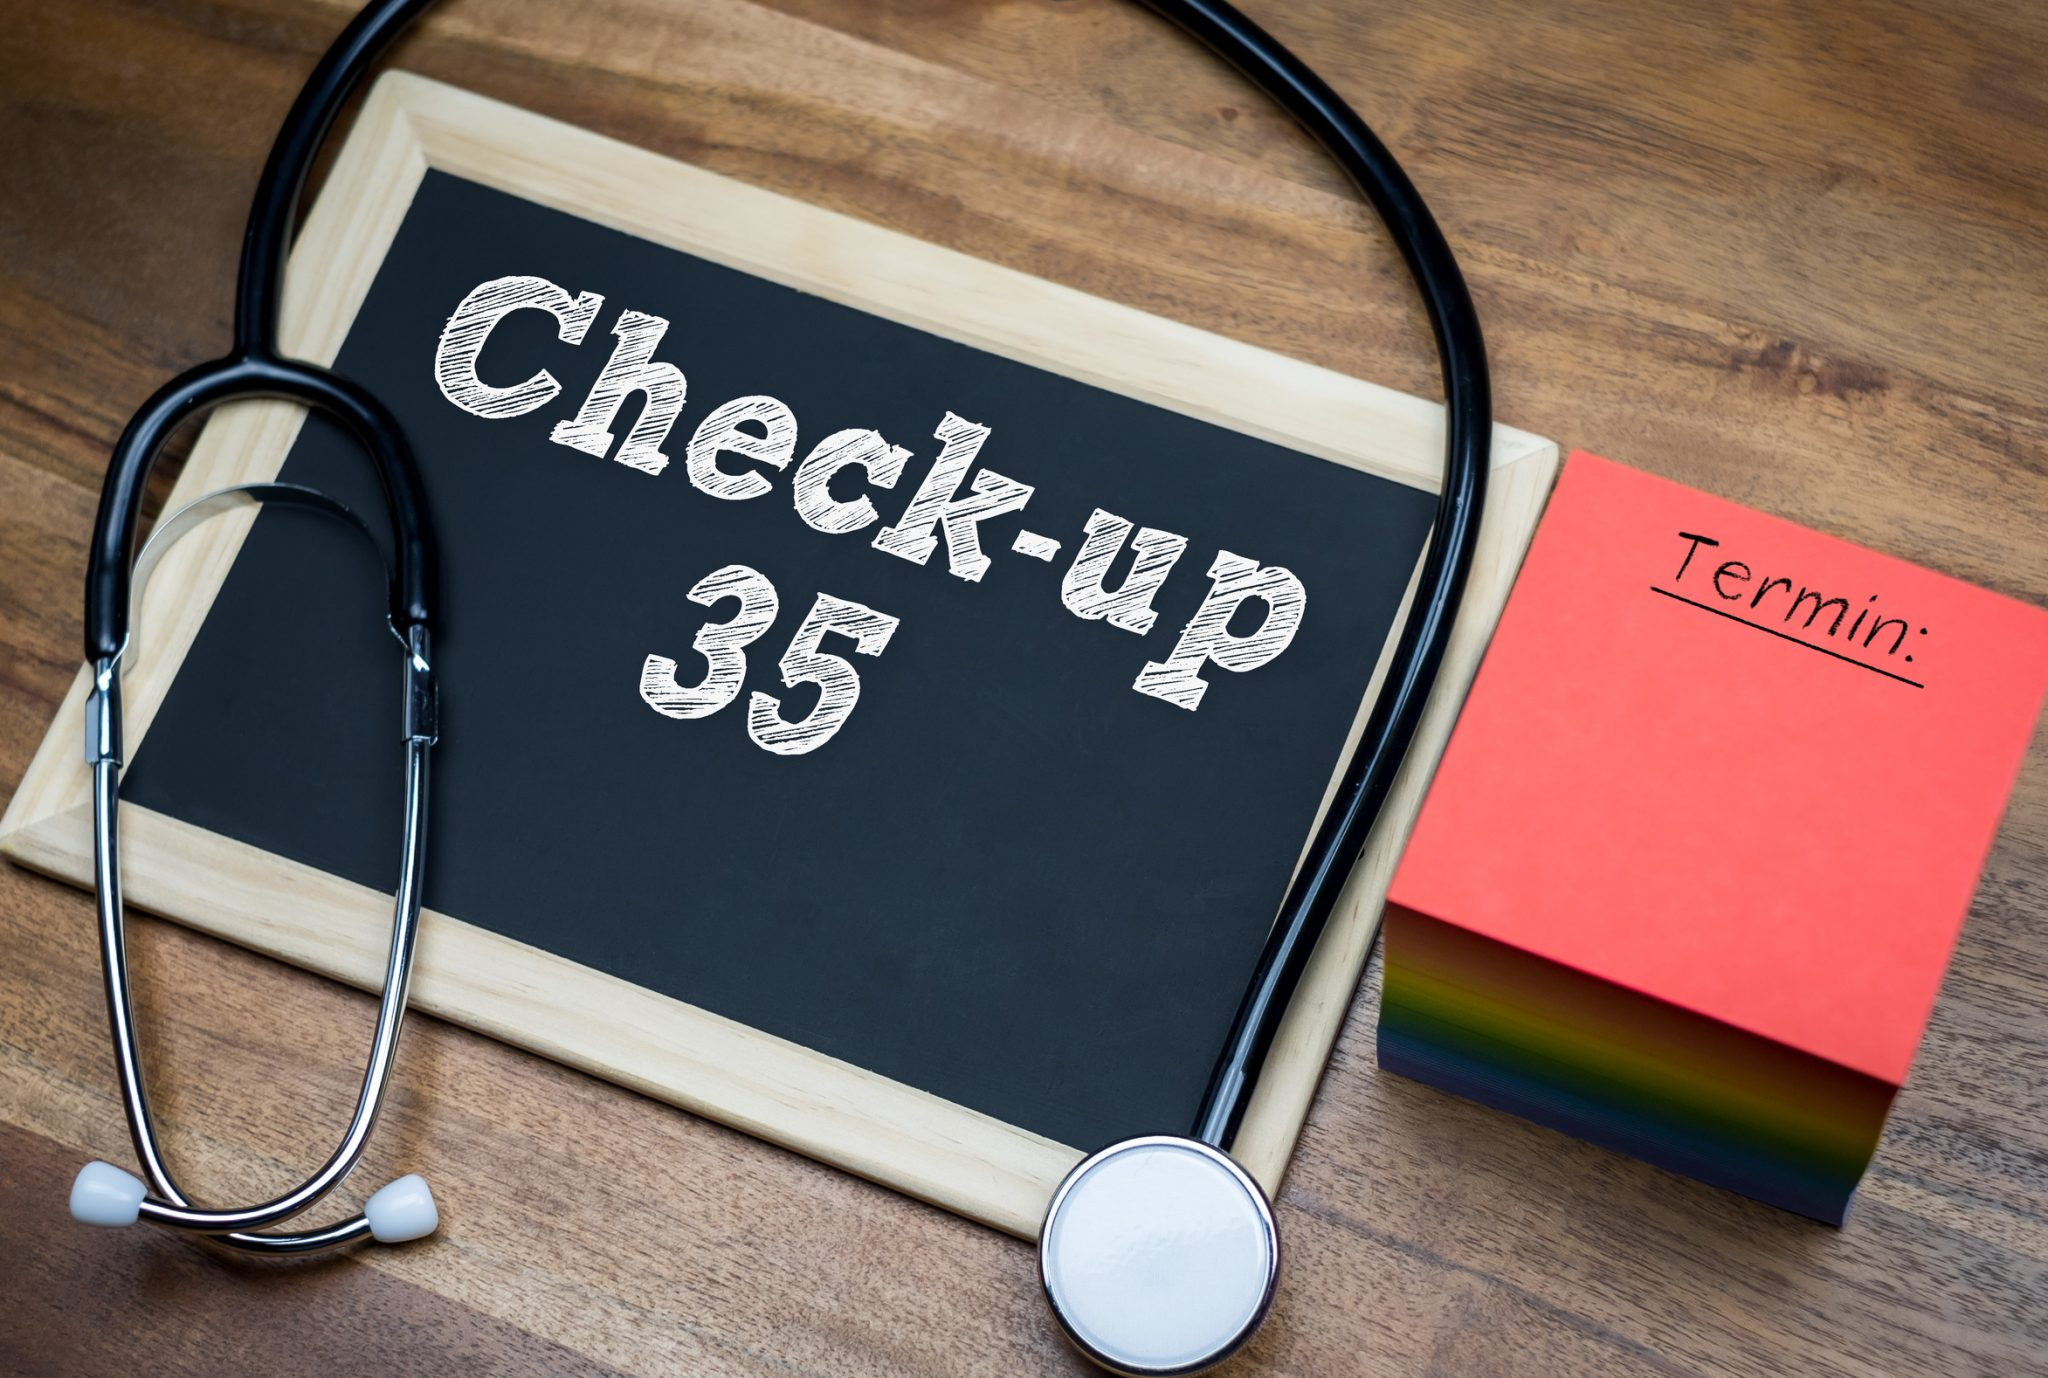 Check Up 35 NEU ab 01.04.2019